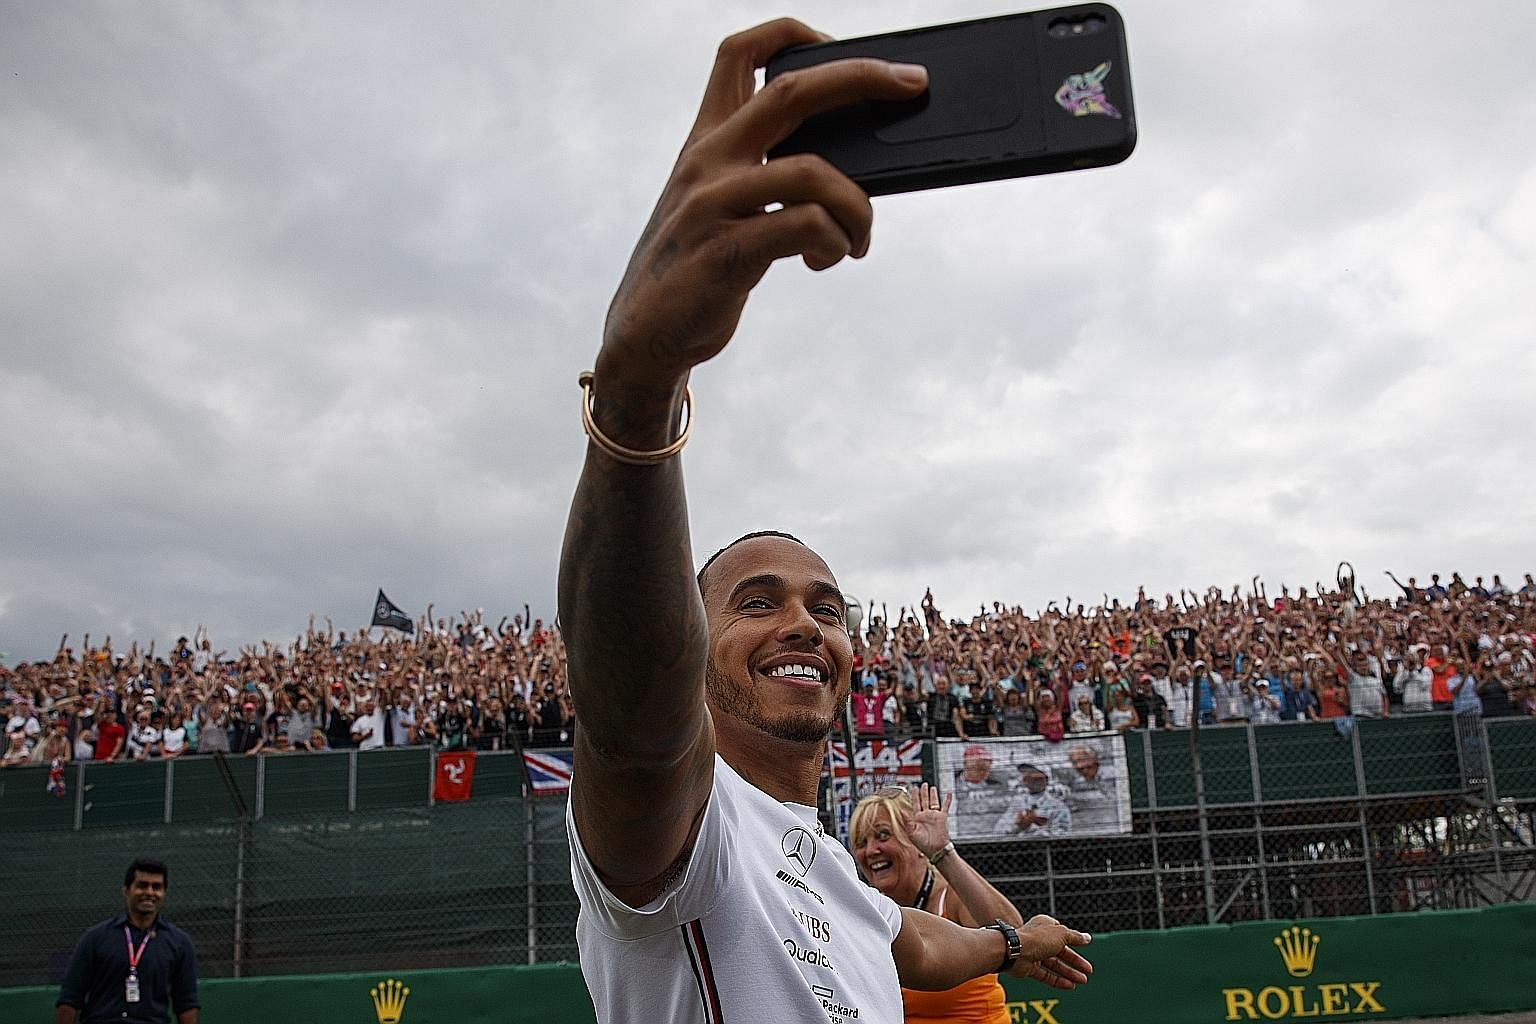 Five-time F1 world champion Lewis Hamilton taking a wefie with fans at Silverstone on Thursday. Tomorrow's British Grand Prix will clash with the Wimbledon men's singles final and the Cricket World Cup final in which England are going for their maide